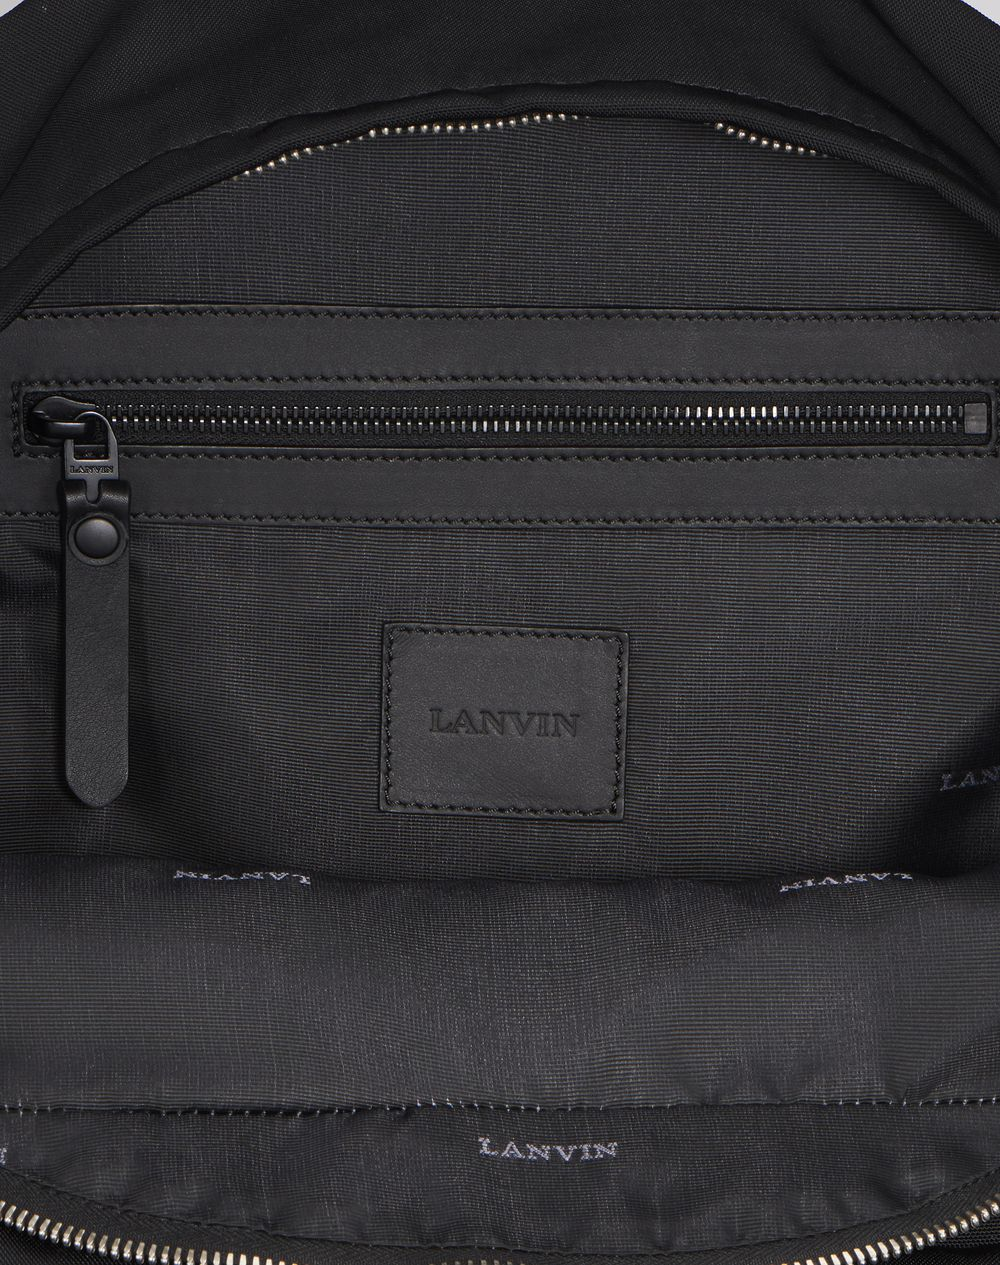 ZIPPERED BACKPACK  - Lanvin